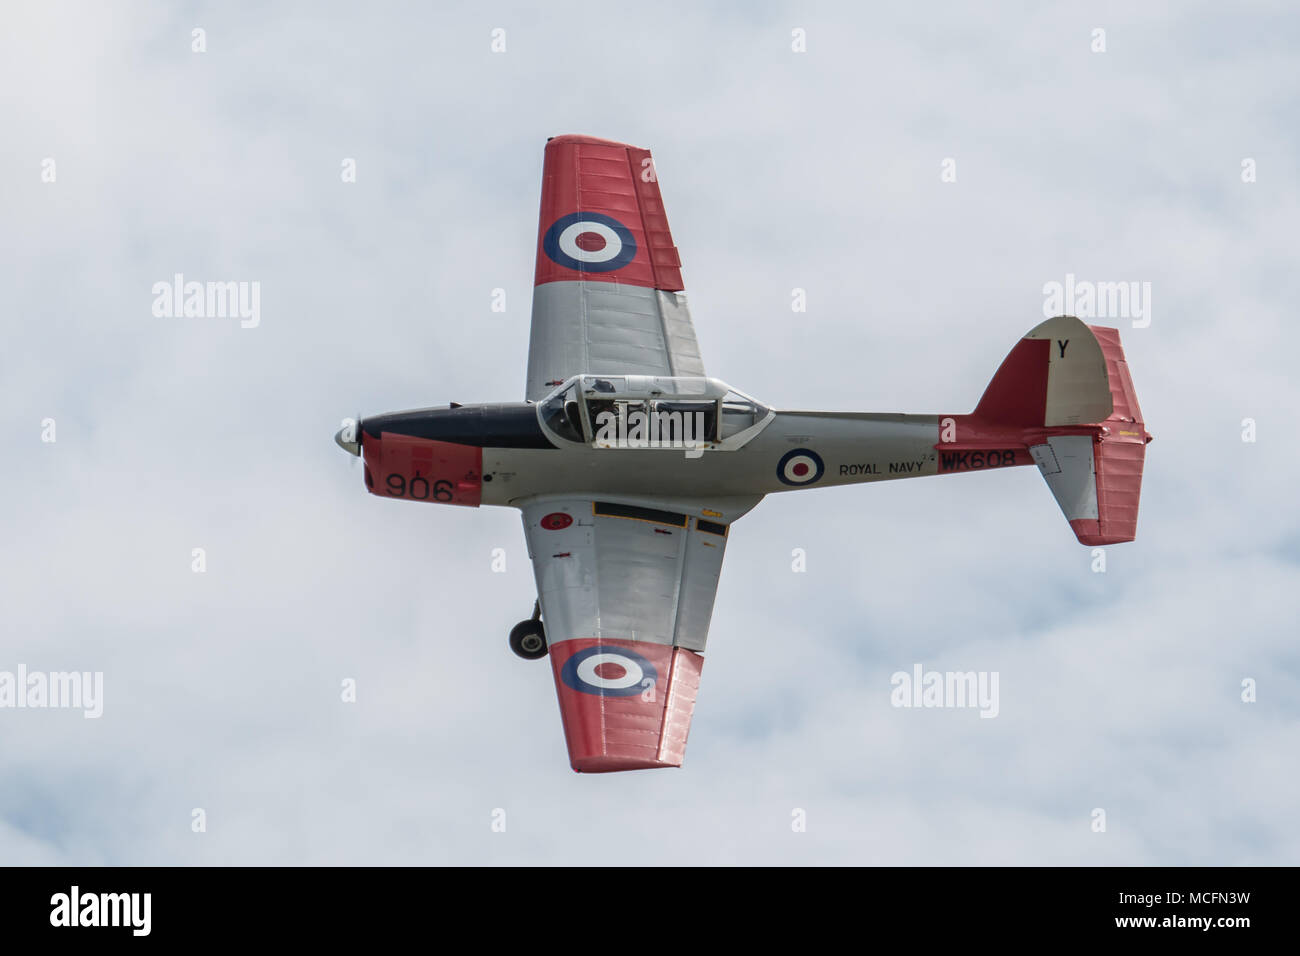 The Royal Navy Historic Flights DHC Chipmunk T mk 10 which is not normally seen during public display but is used for training by the RNHF/ - Stock Image